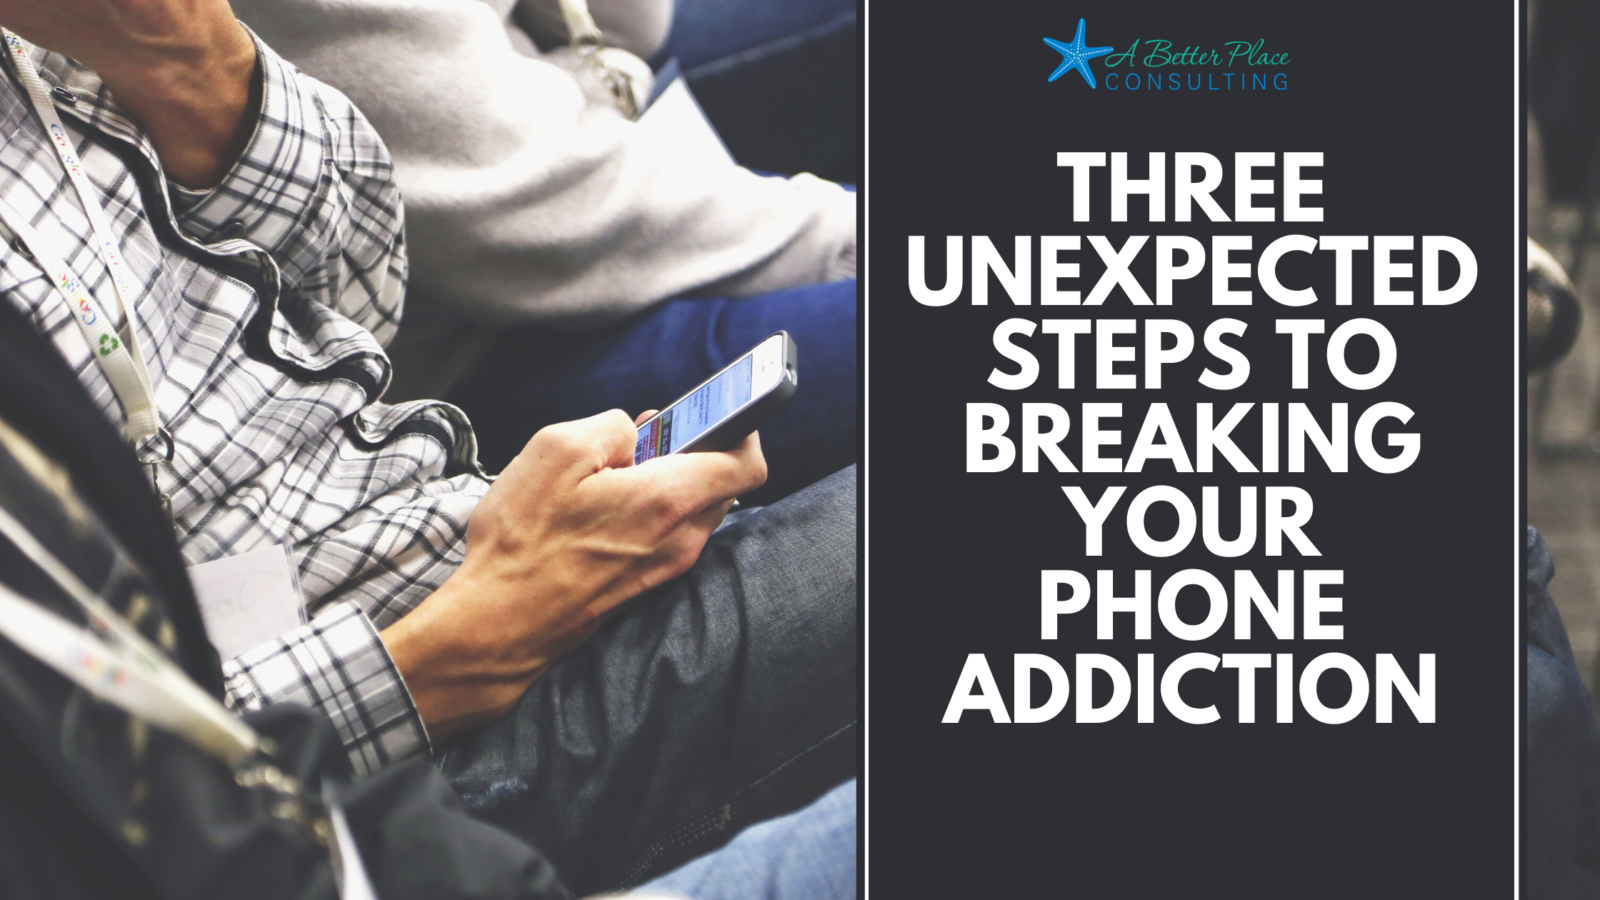 Three-Unexpected-Steps-to-Breaking-Your-Phone-Addiction